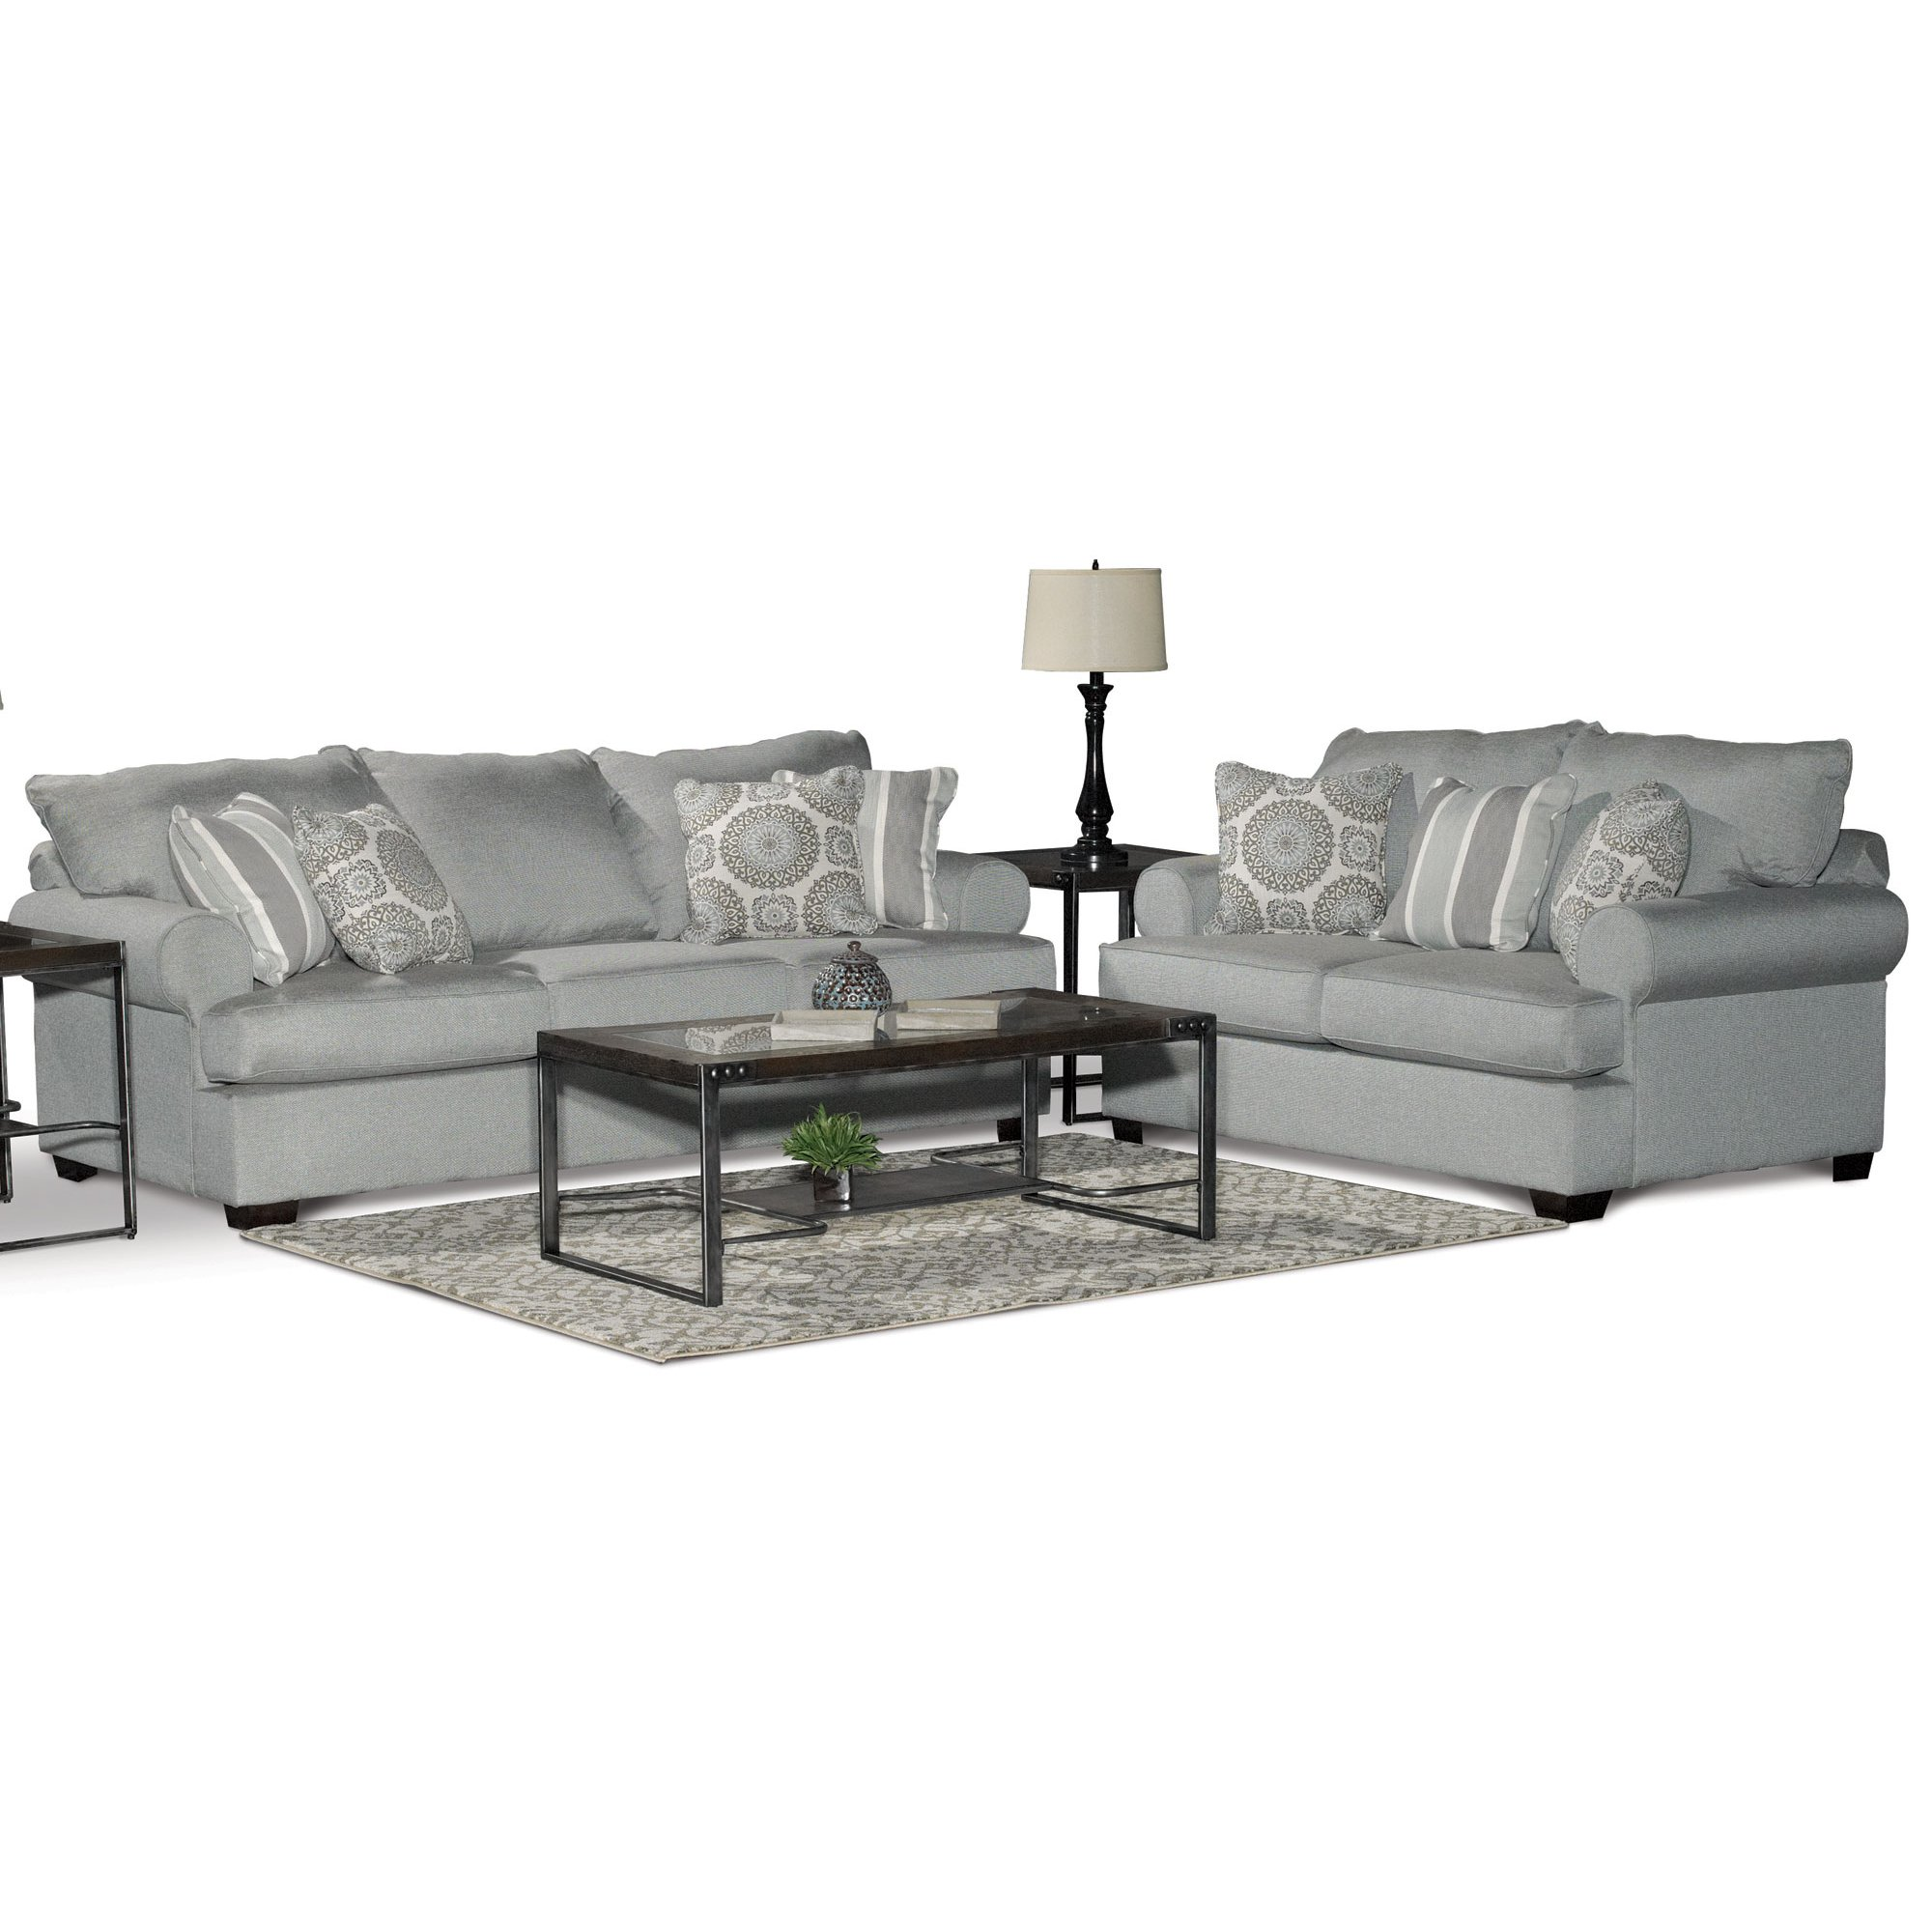 Casual Classic Mist Green 2 Piece Room Group   Alison. Furniture for your living room  dining room or bedroom    RC